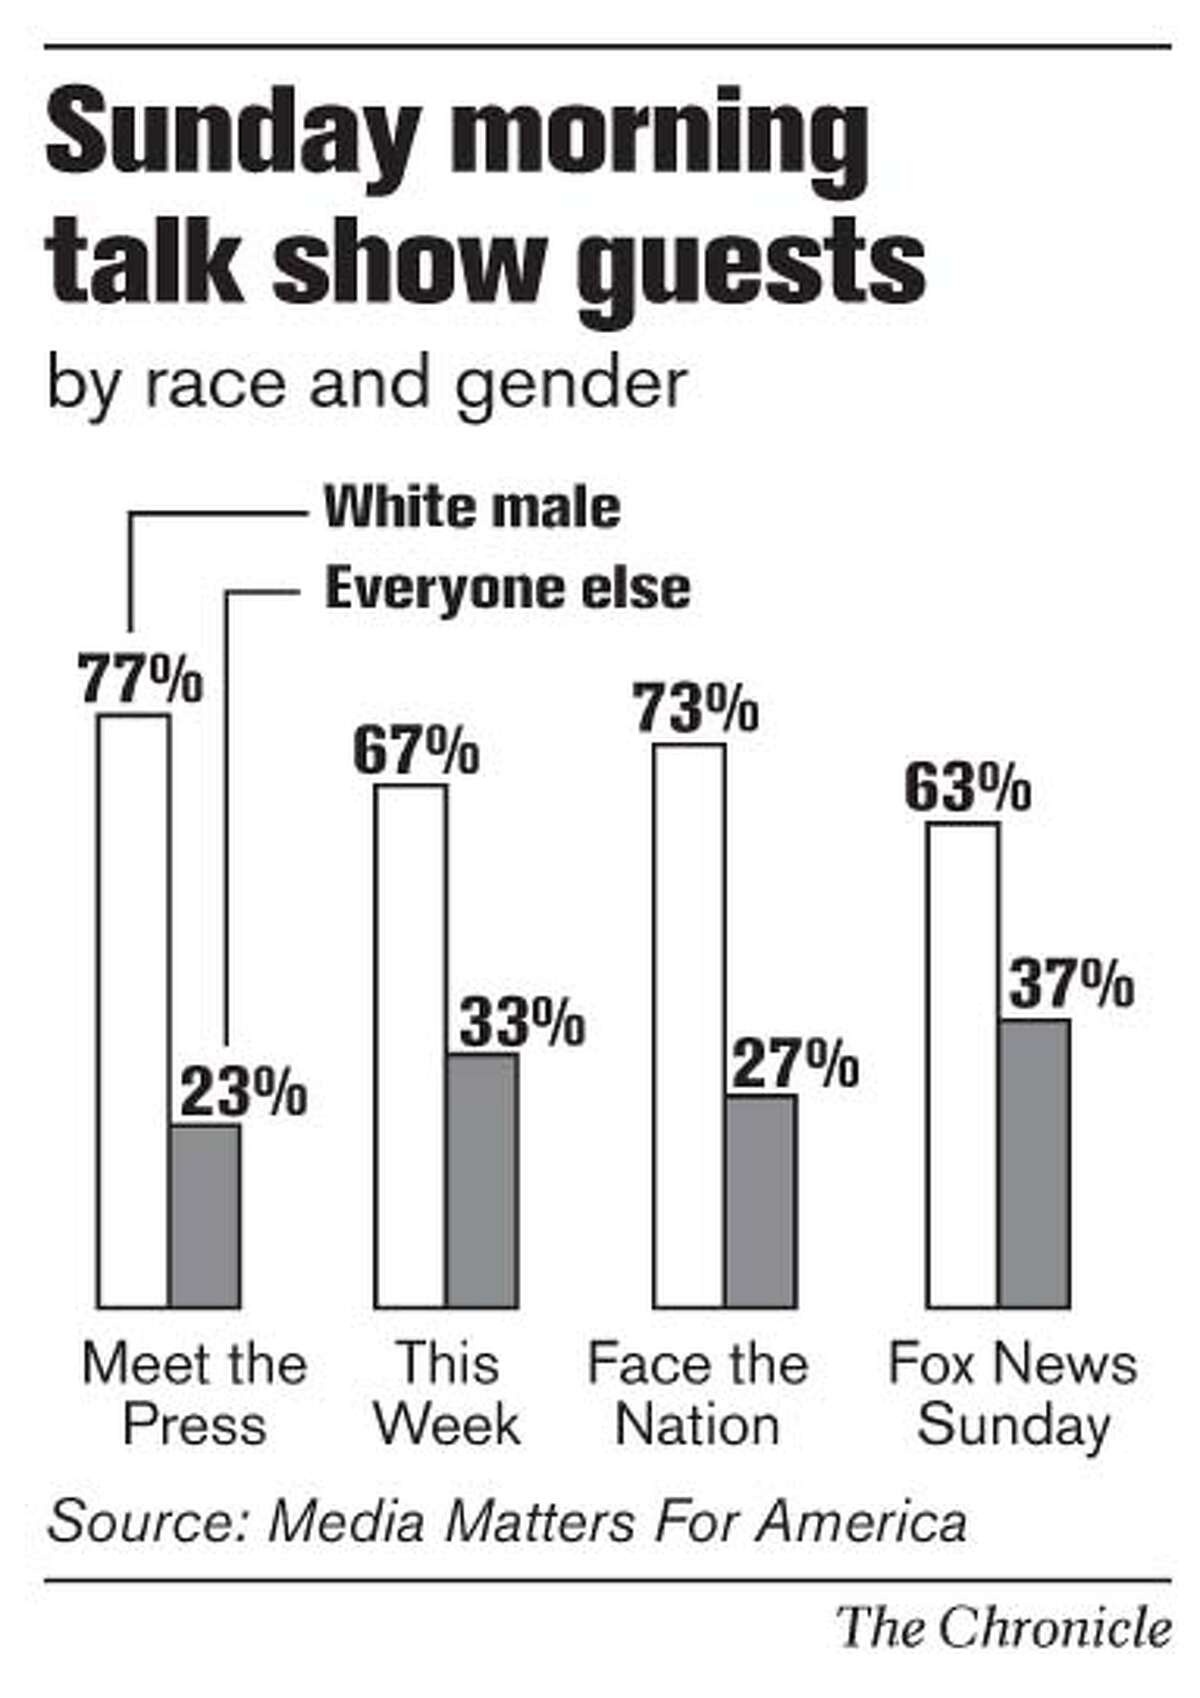 Sunday morning talk show guests. Chronicle Graphic